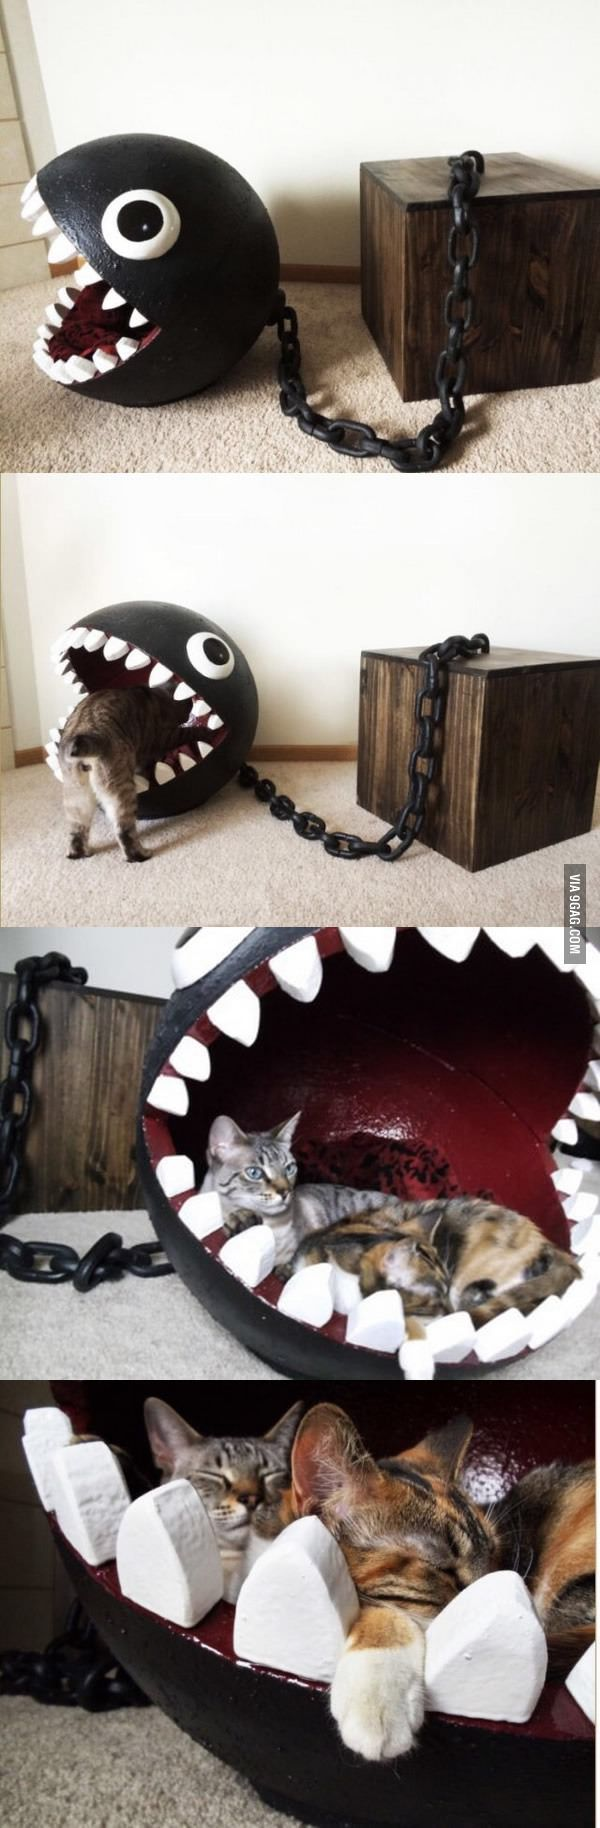 For his game room. Because cats. And also because these terrified me, like cats.